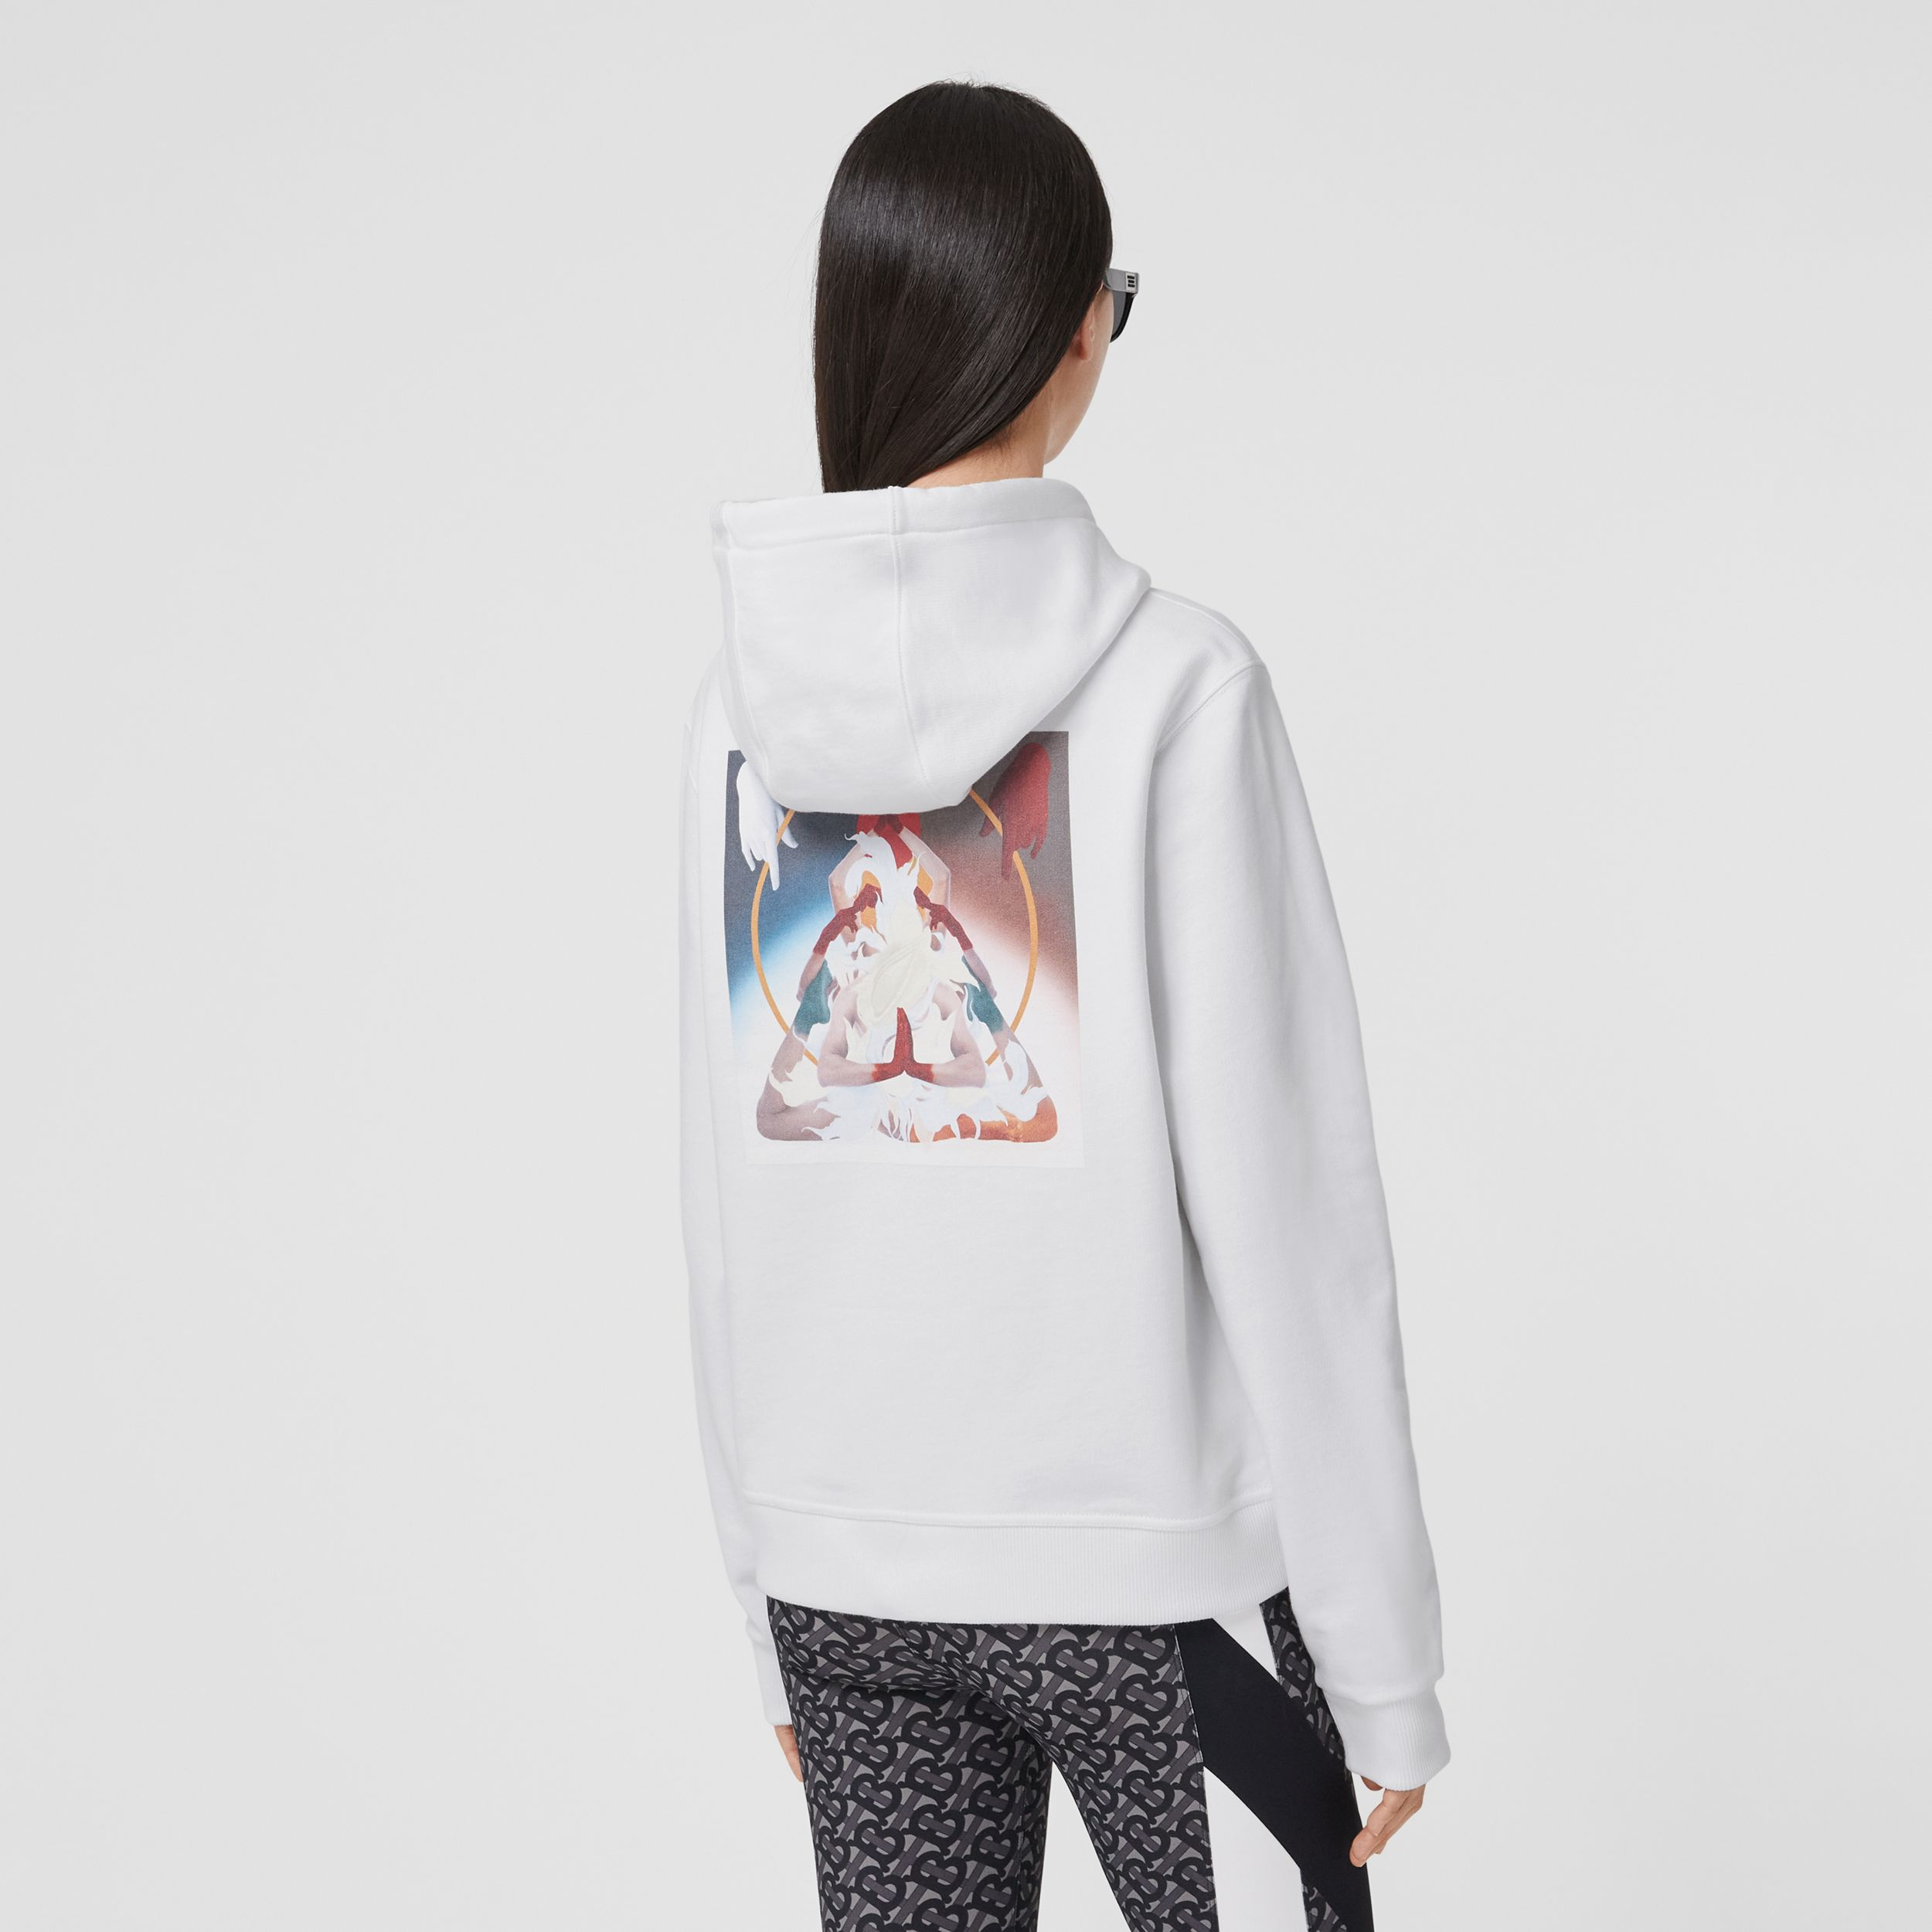 Meditation Print Cotton Oversized Hoodie in White - Women | Burberry - 3